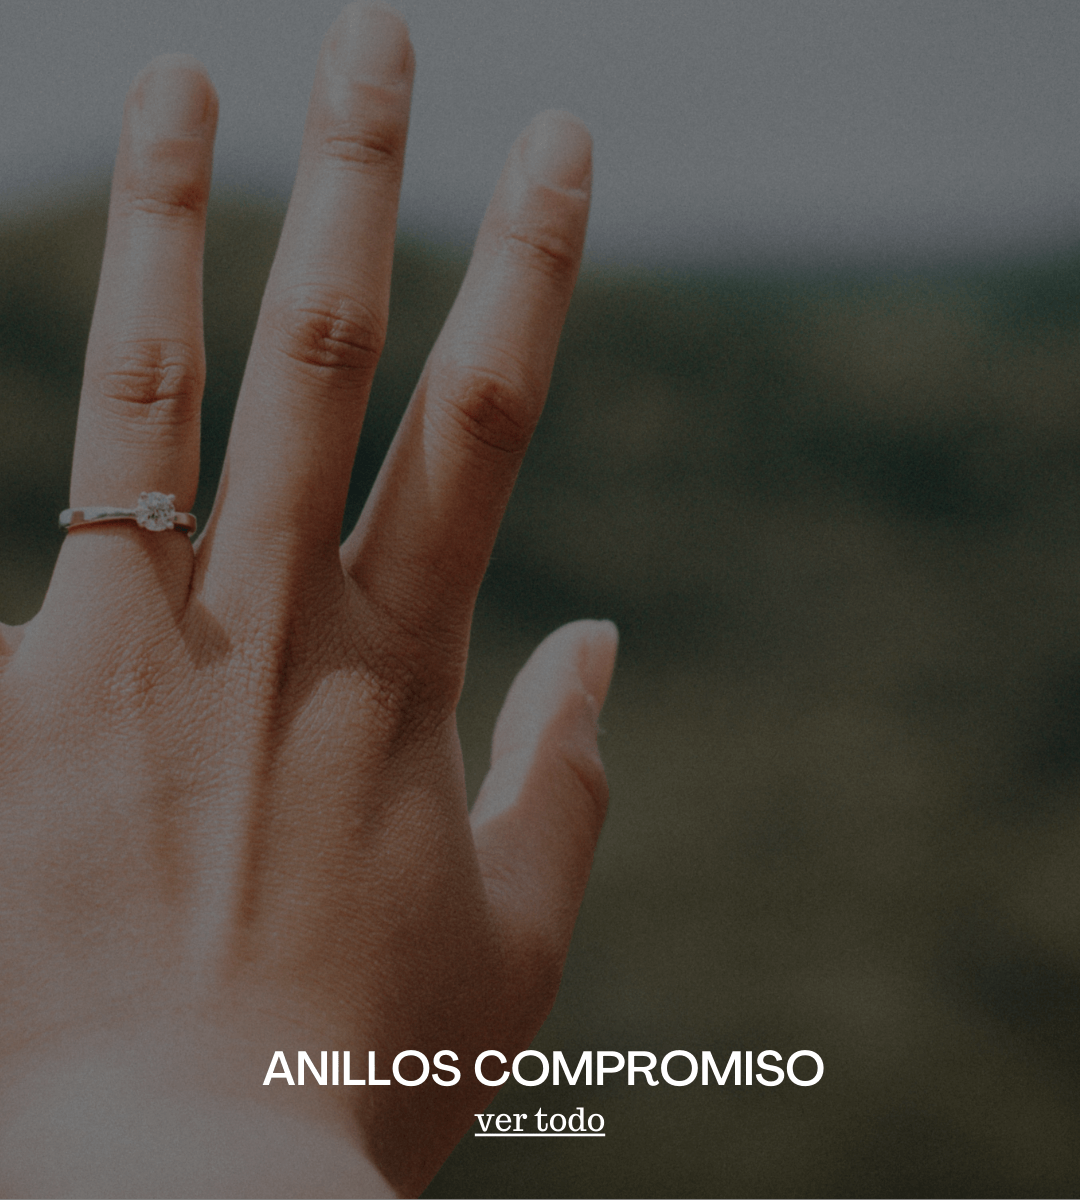 anillos-compromiso-general